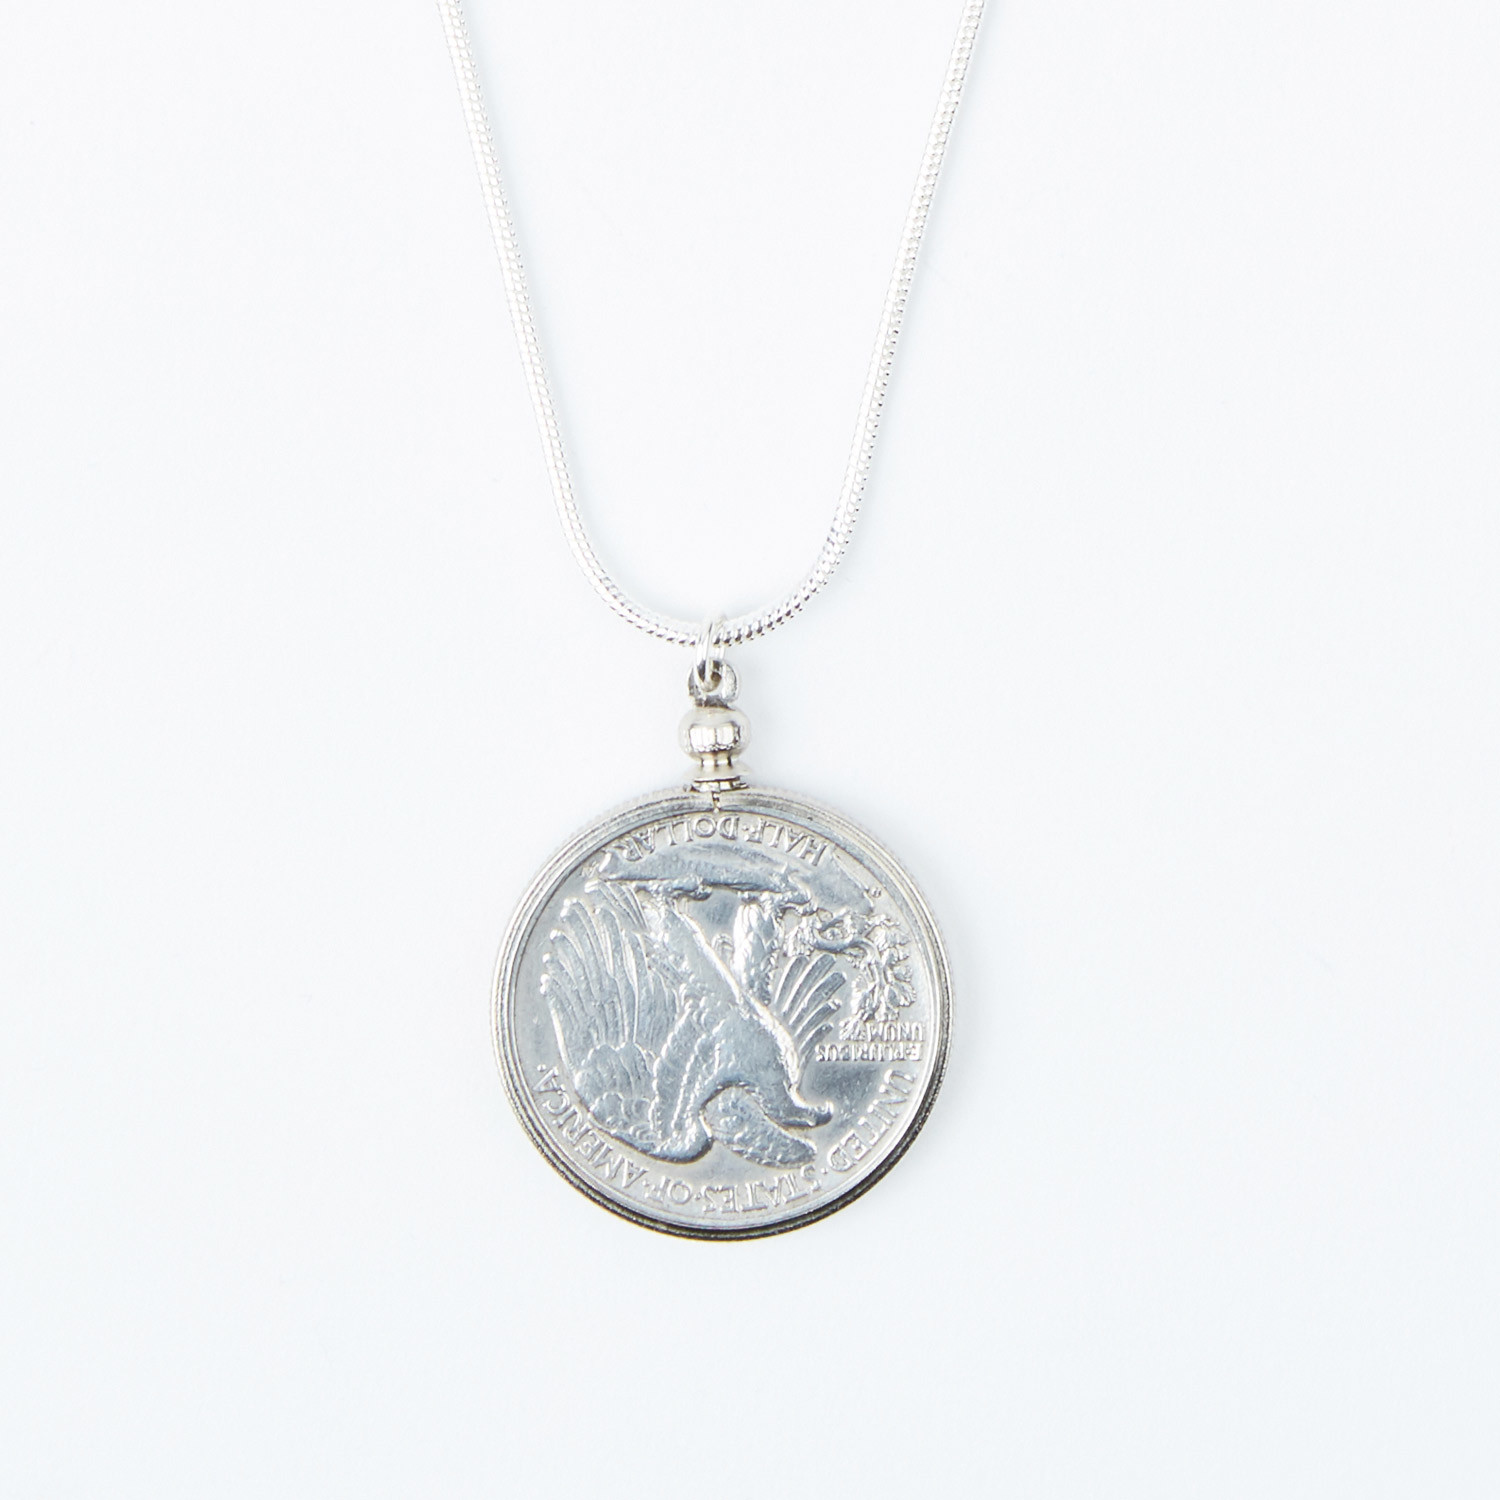 Walking Liberty Coin Necklace